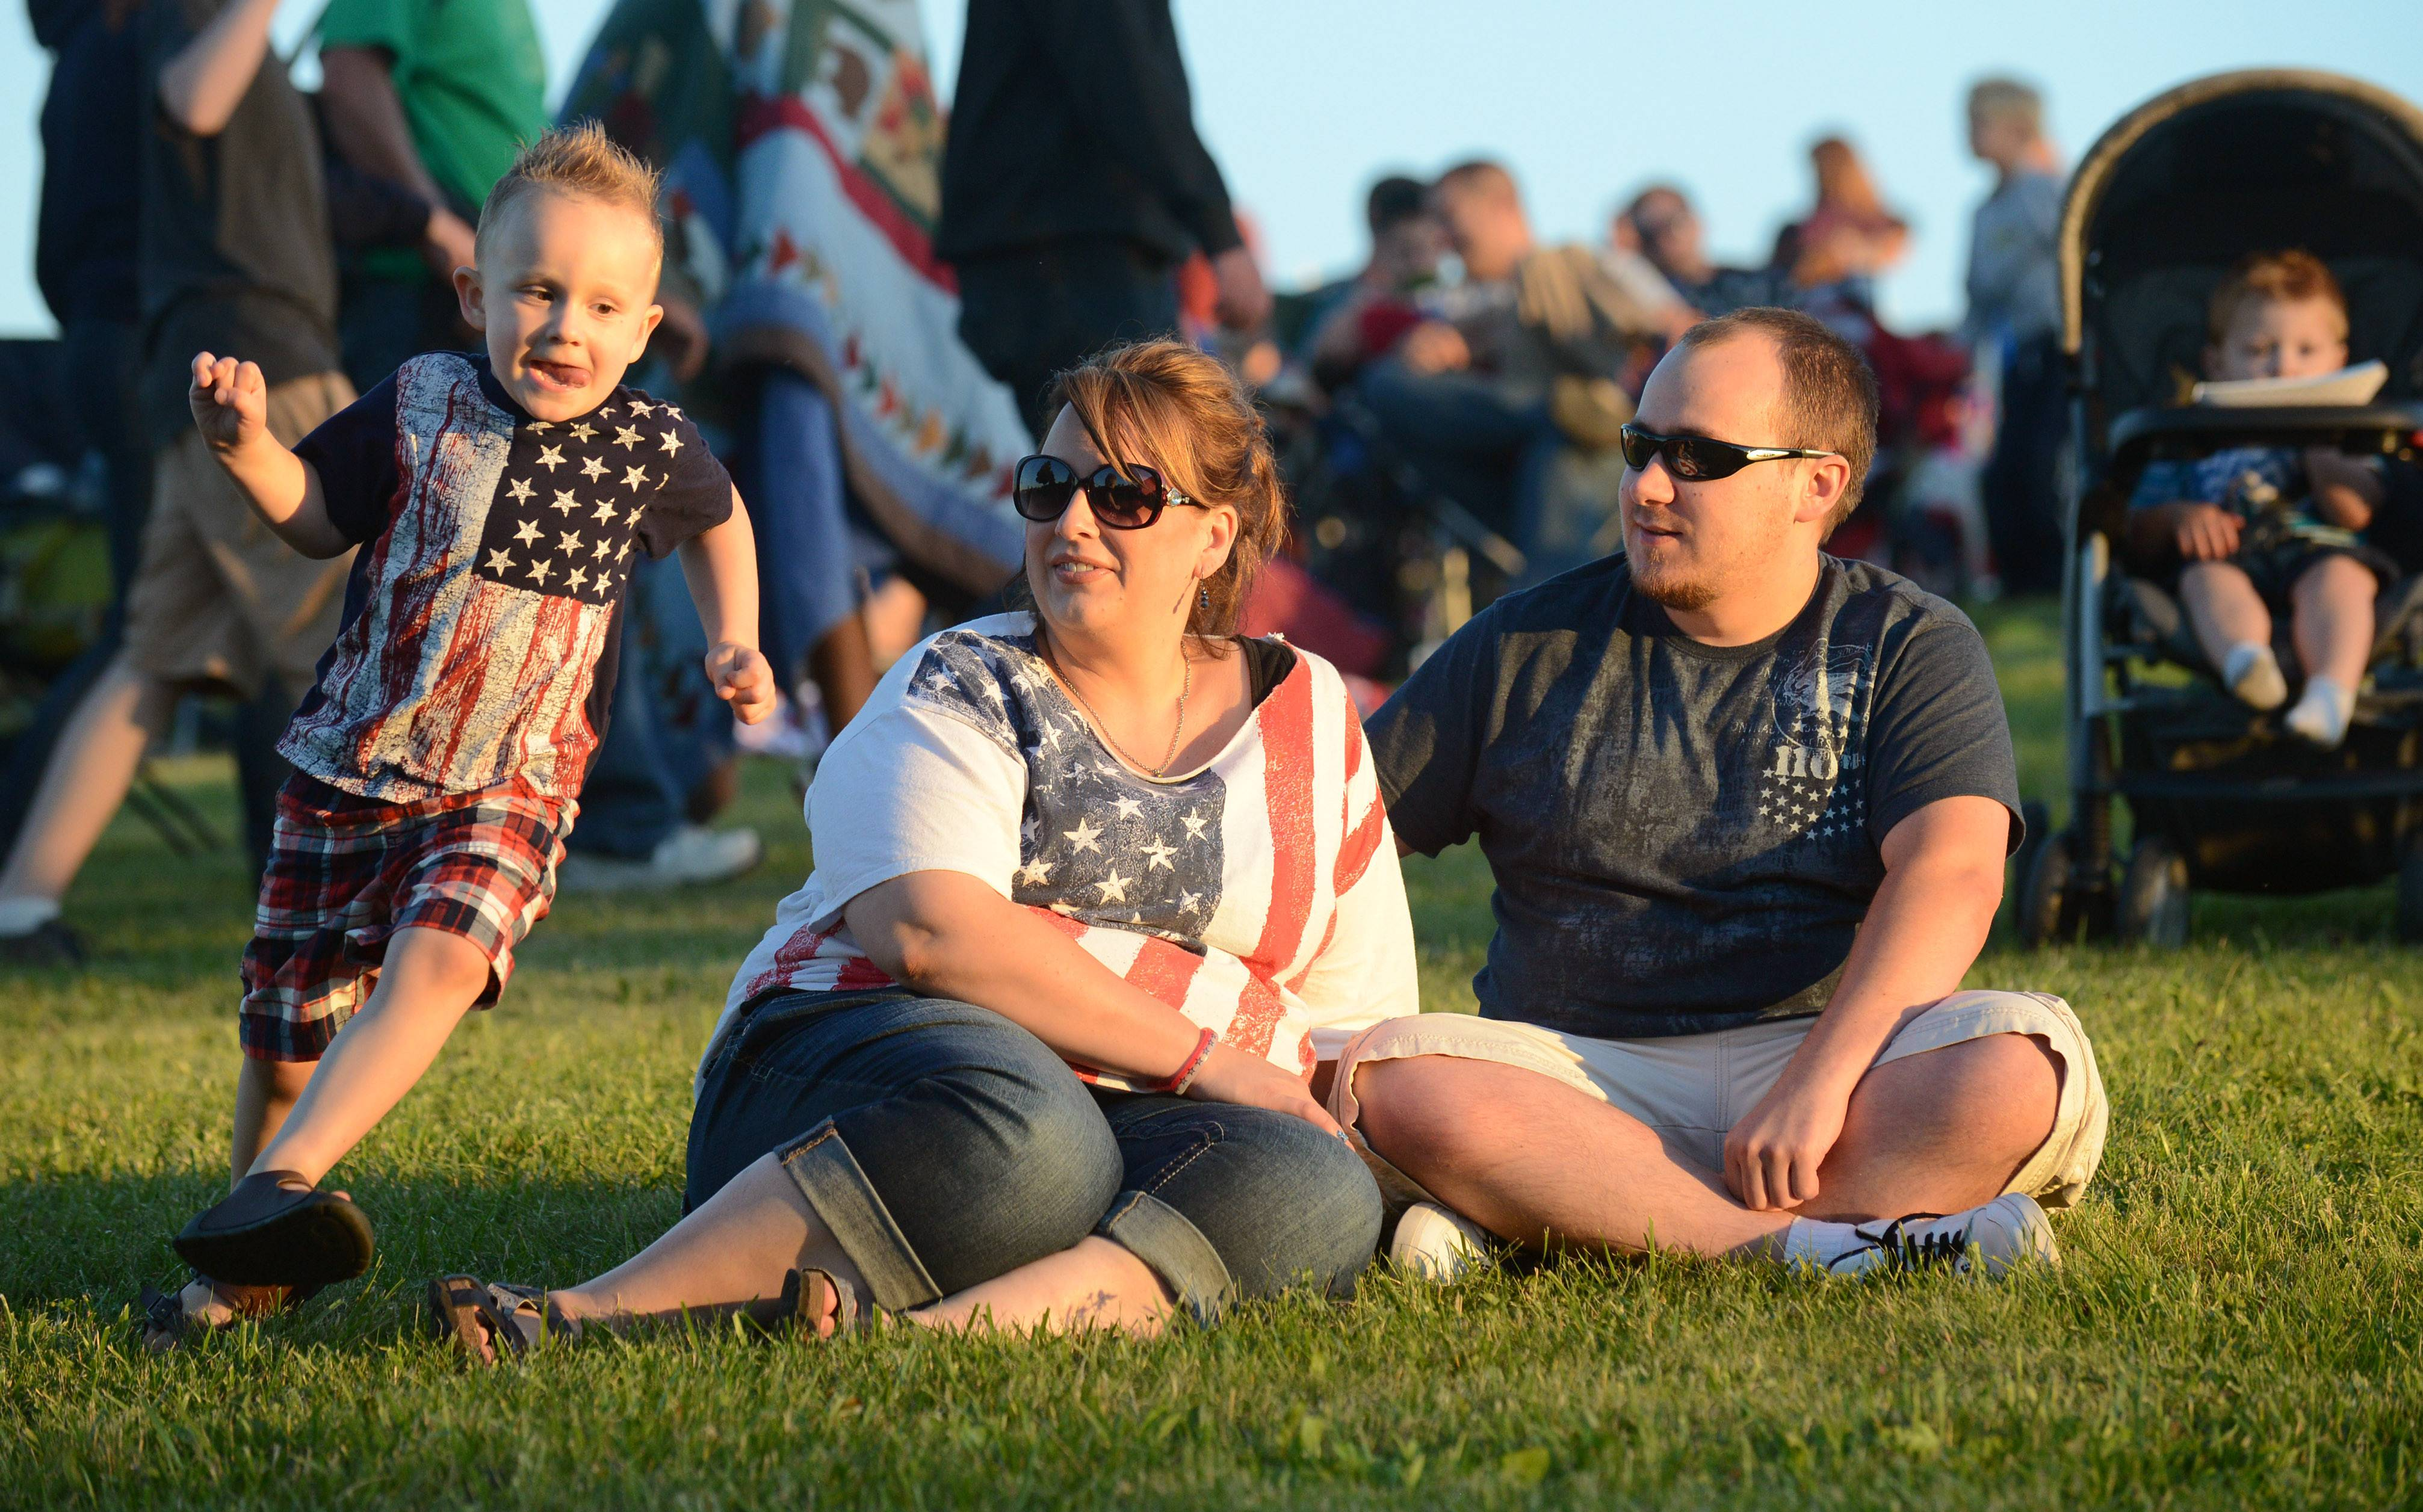 William Wendt, 3, of Island Lake runs circles around his mother, Amanda Wendt, and her boyfriend, Bryan McCaffrey of Crystal Lake, while they listen to the Alex and The Allstars at the Cary Summer Celebration Thursday at Lions Park on Thursday. The trio planned to stick around for the fireworks show, too.